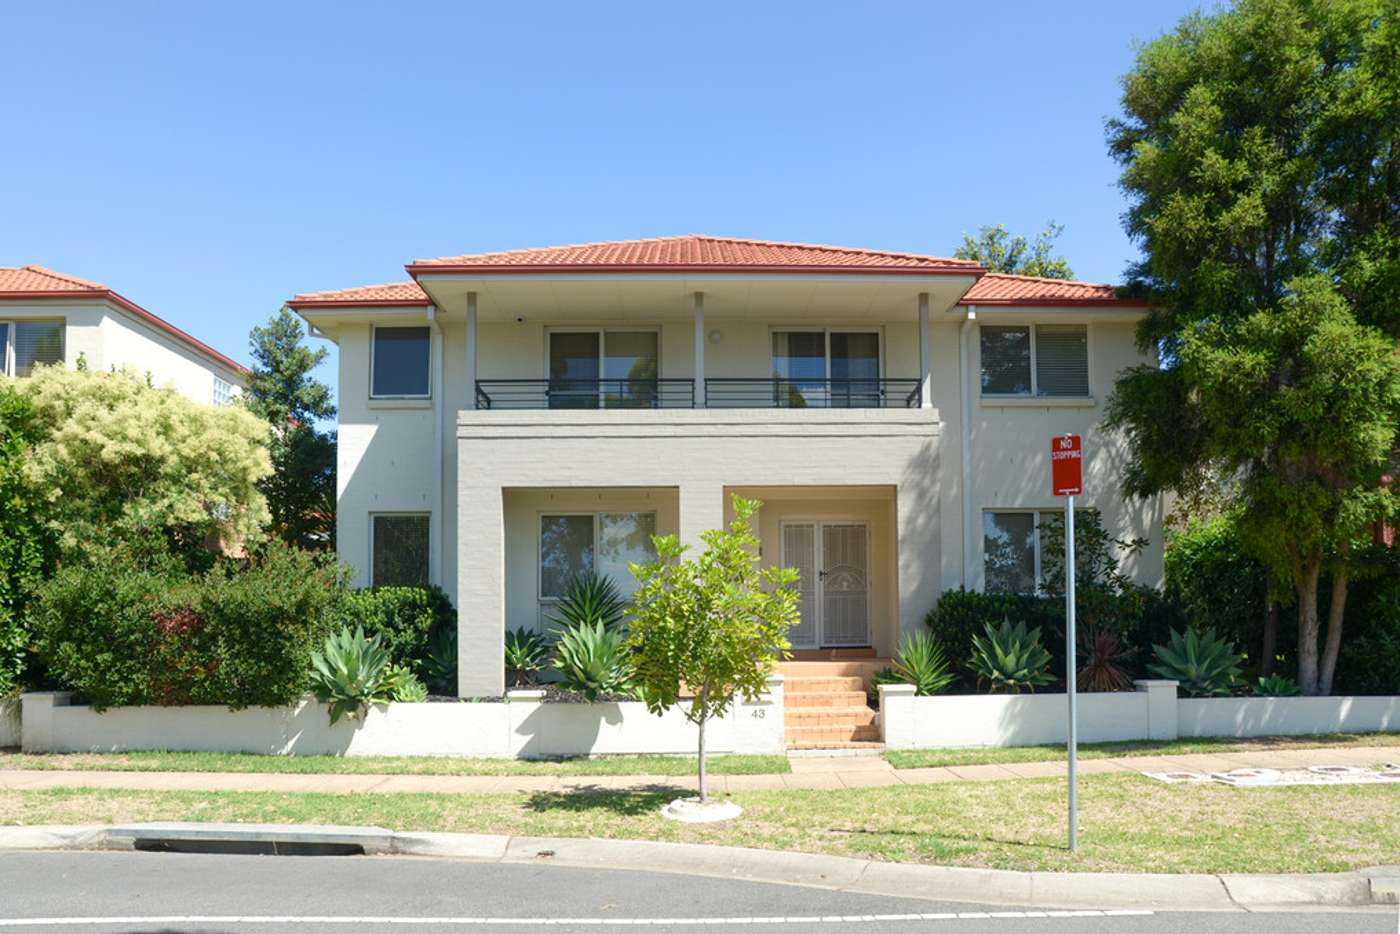 Main view of Homely house listing, 43 Elmstree Road, Stanhope Gardens NSW 2768